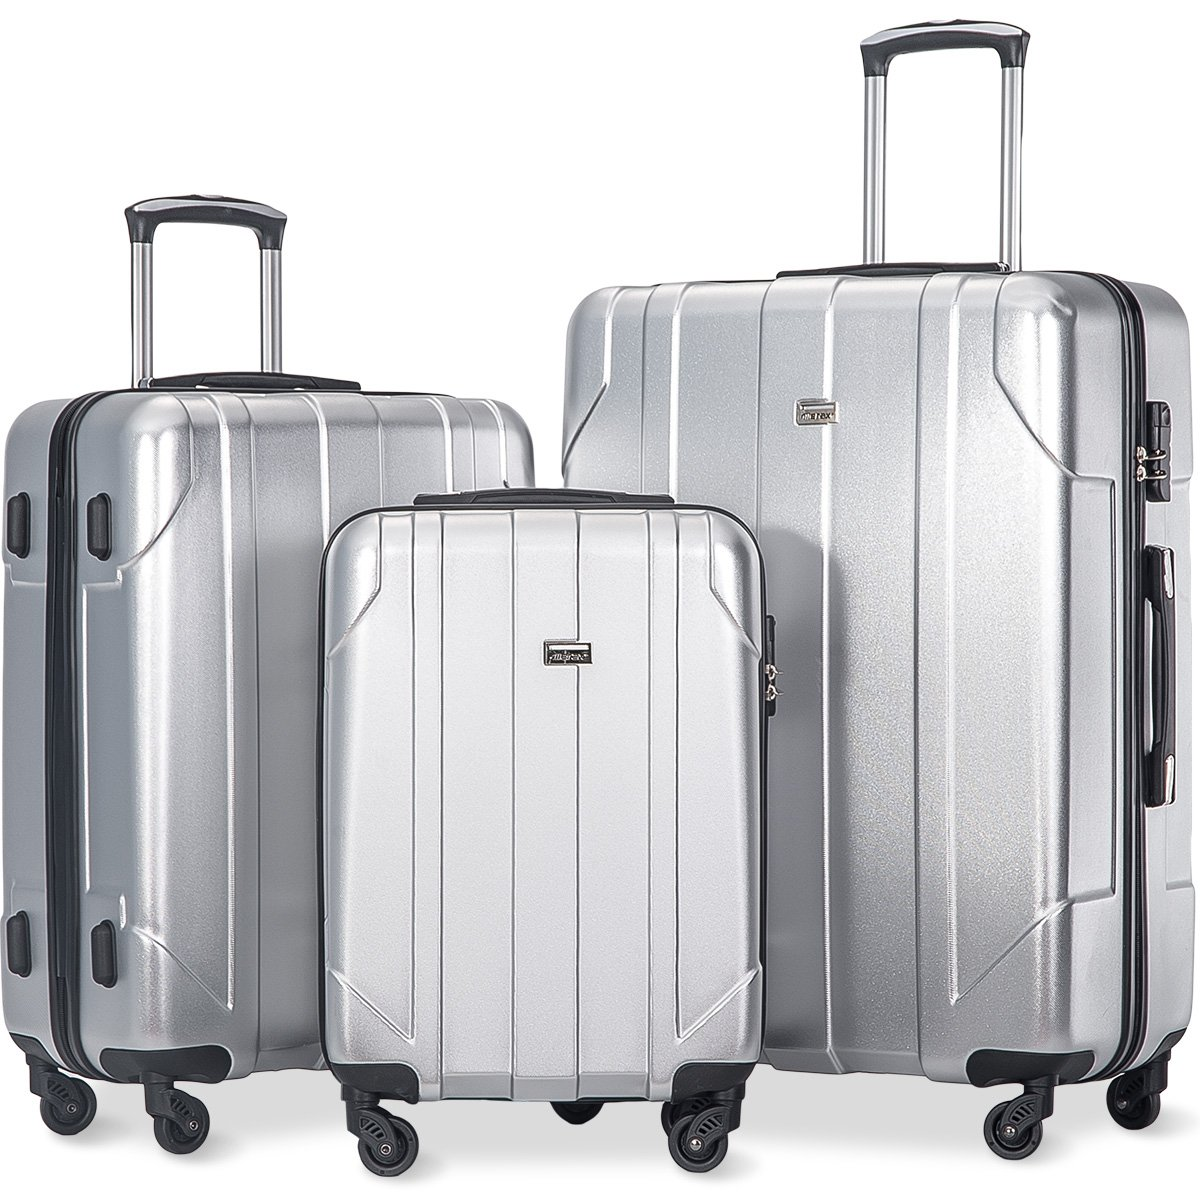 Merax 3 Piece P.E.T Luggage Set Eco-friendly Light Weight Spinner Suitcase(Silver)